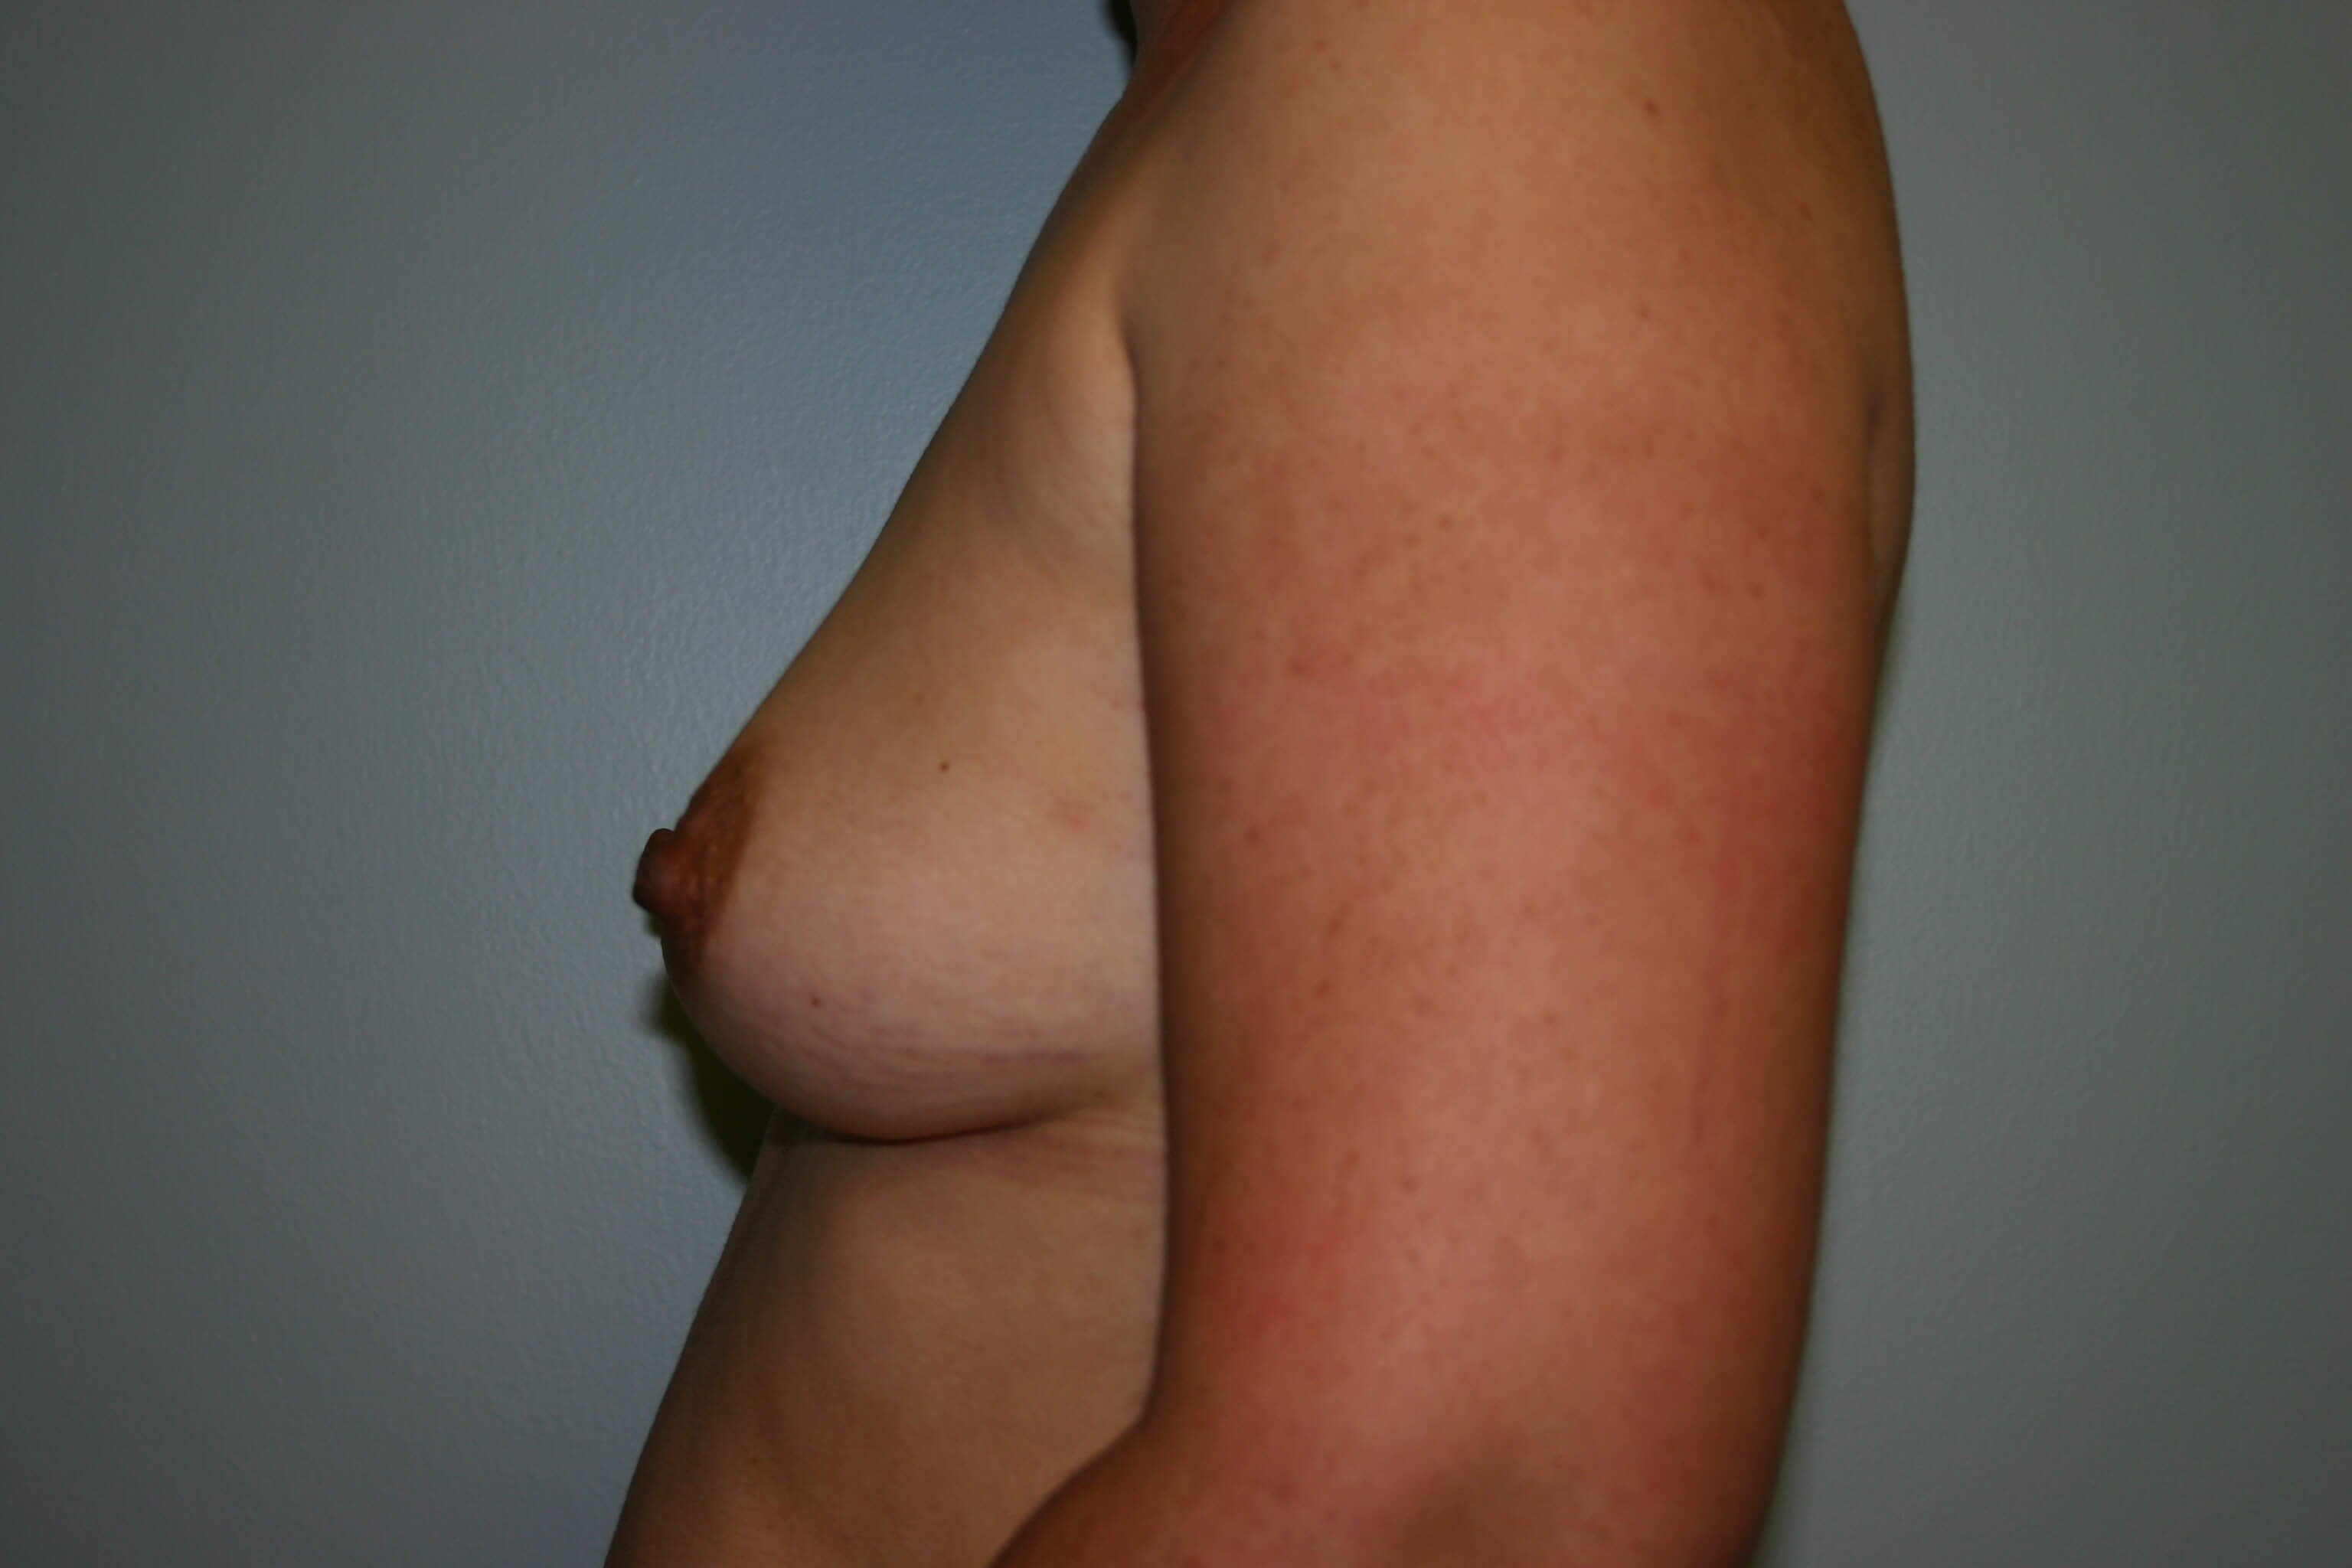 6 Months Post-Op Breast Aug Before